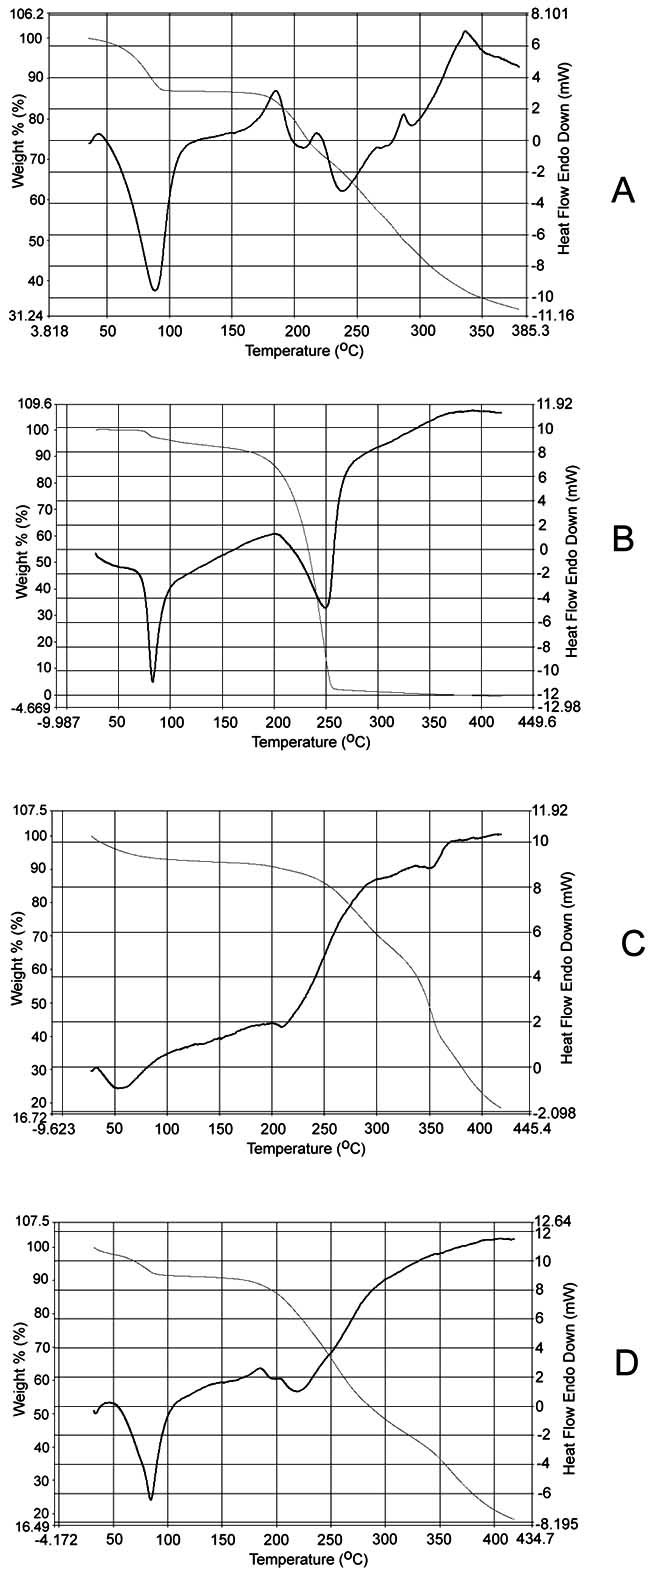 DSC thermograms of A. Lidocaine hydrochloride, B